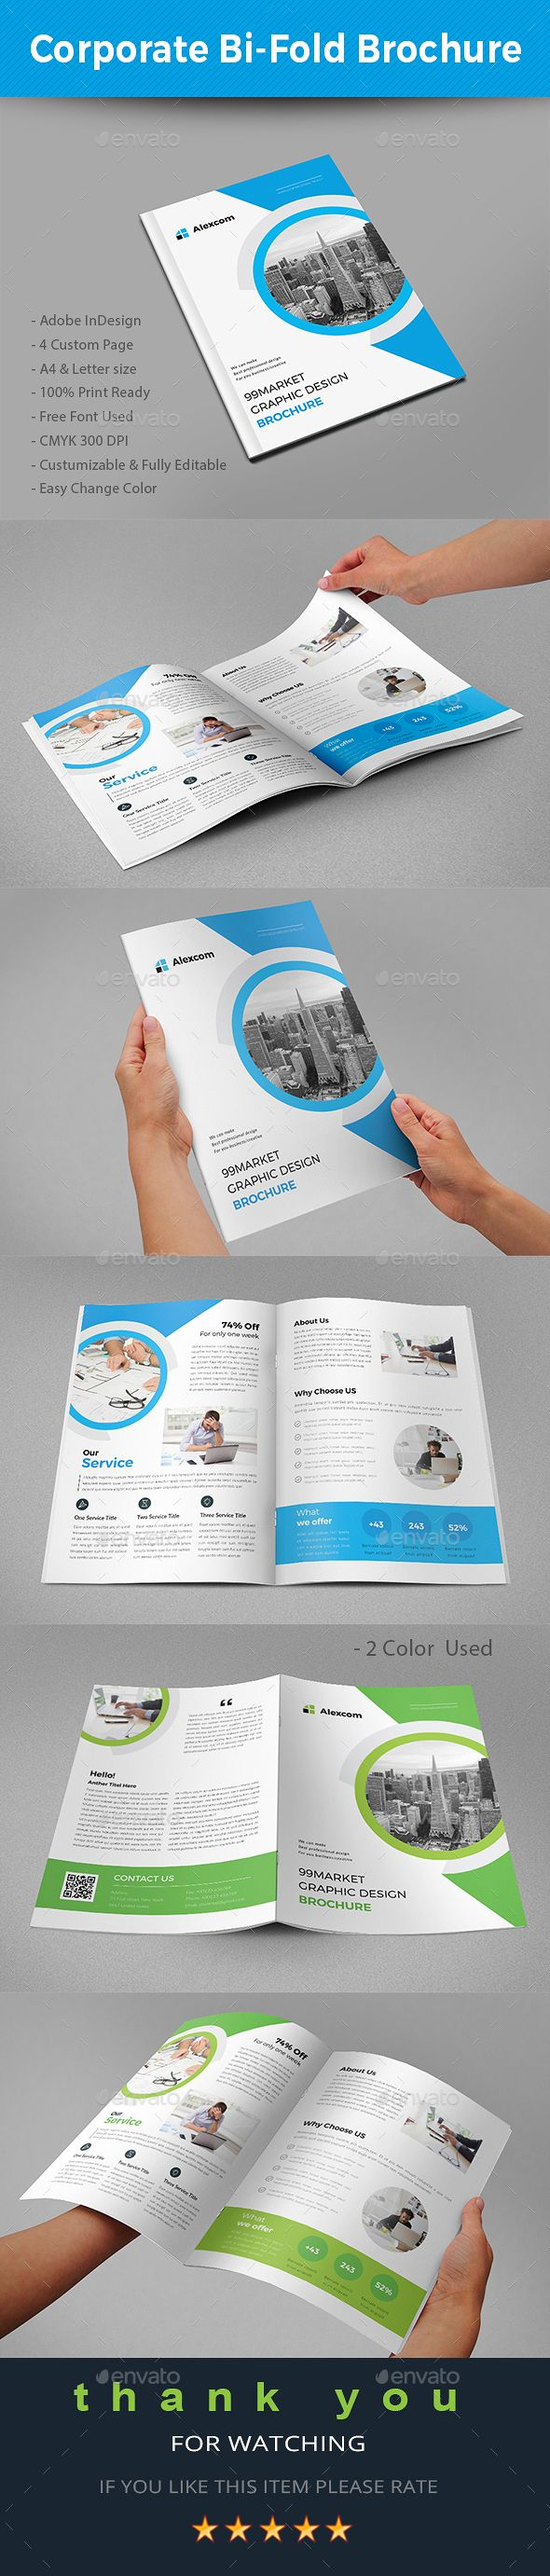 Best Bifold Brochure Images On Pinterest Brochure Template - Bi fold brochure template indesign